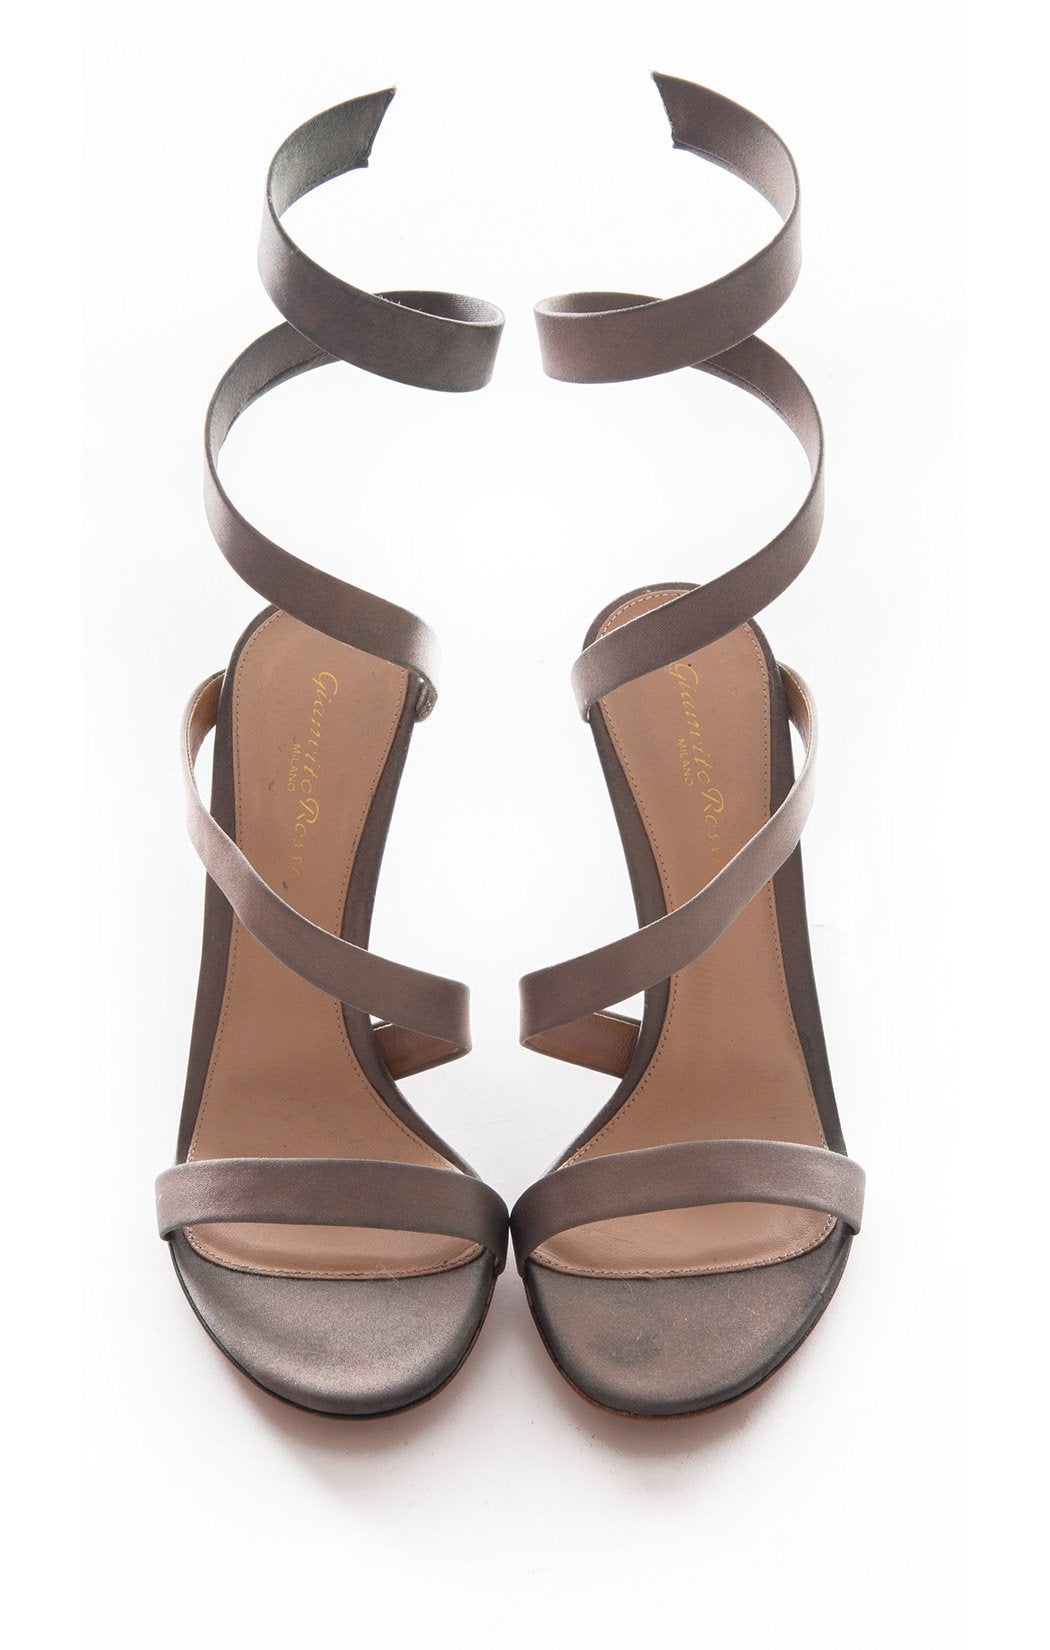 Front view of GIANVITTO ROSSI w/tags Sandal Size: 9